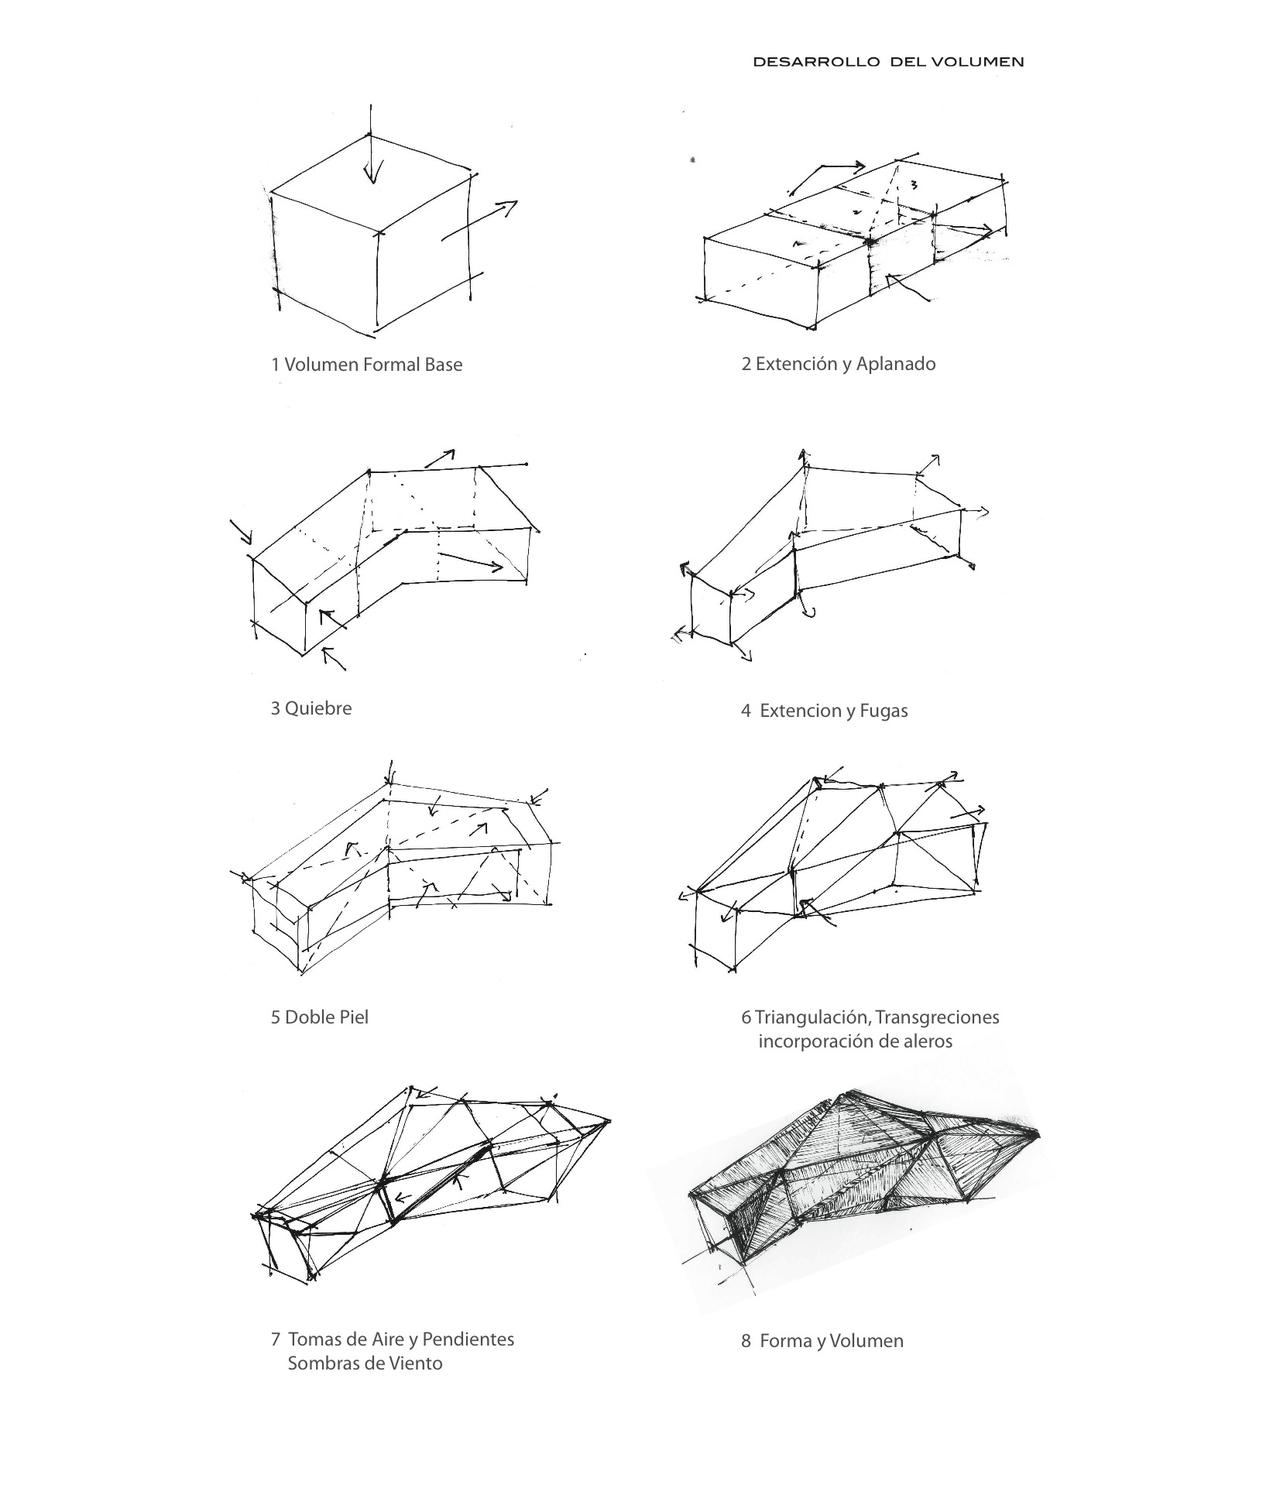 Pin On Architecture Concept Drawings